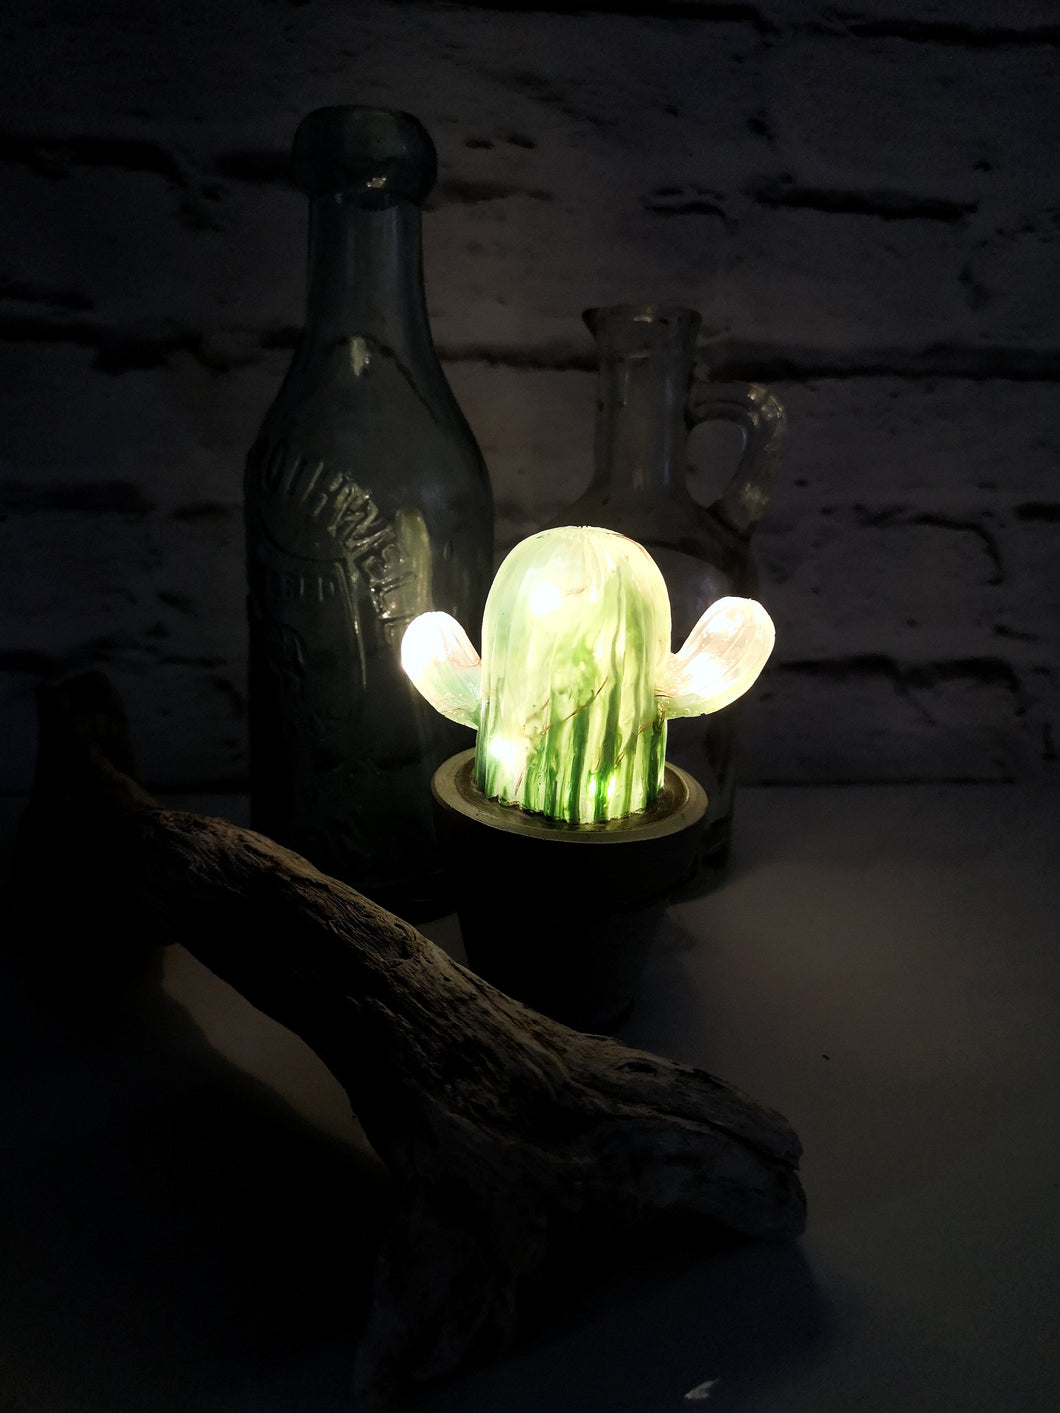 Cactus plant led light - cute little prick